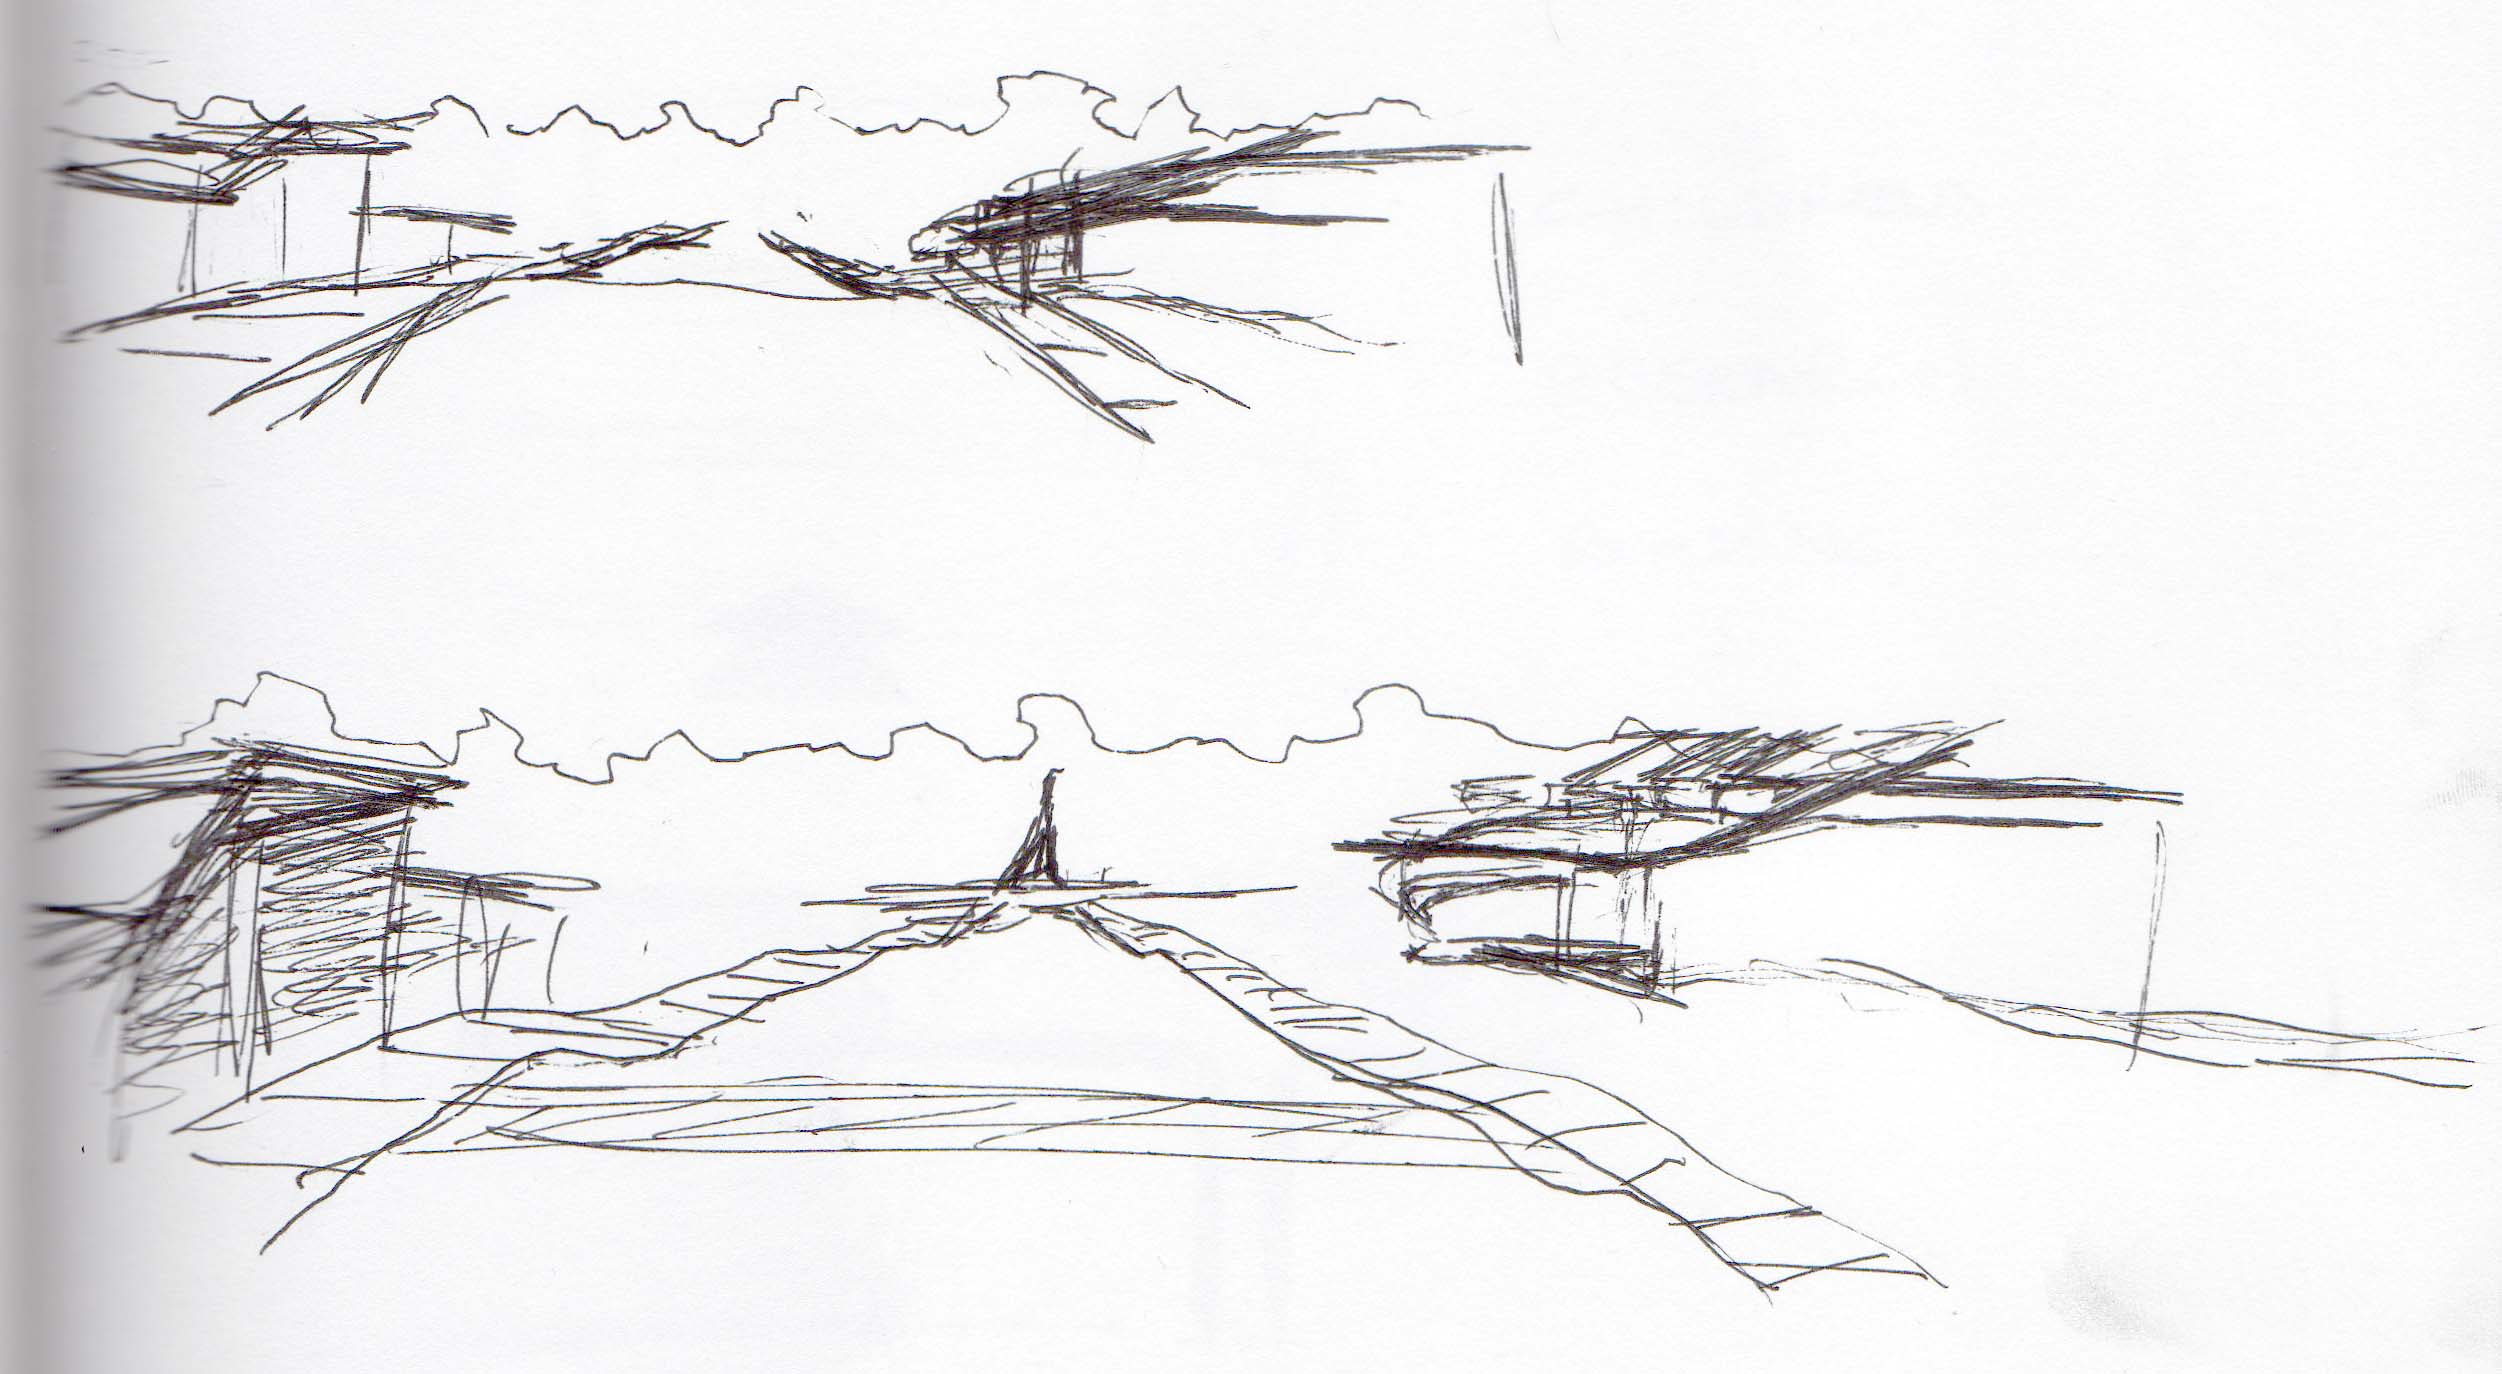 Site Sketch- View from Road